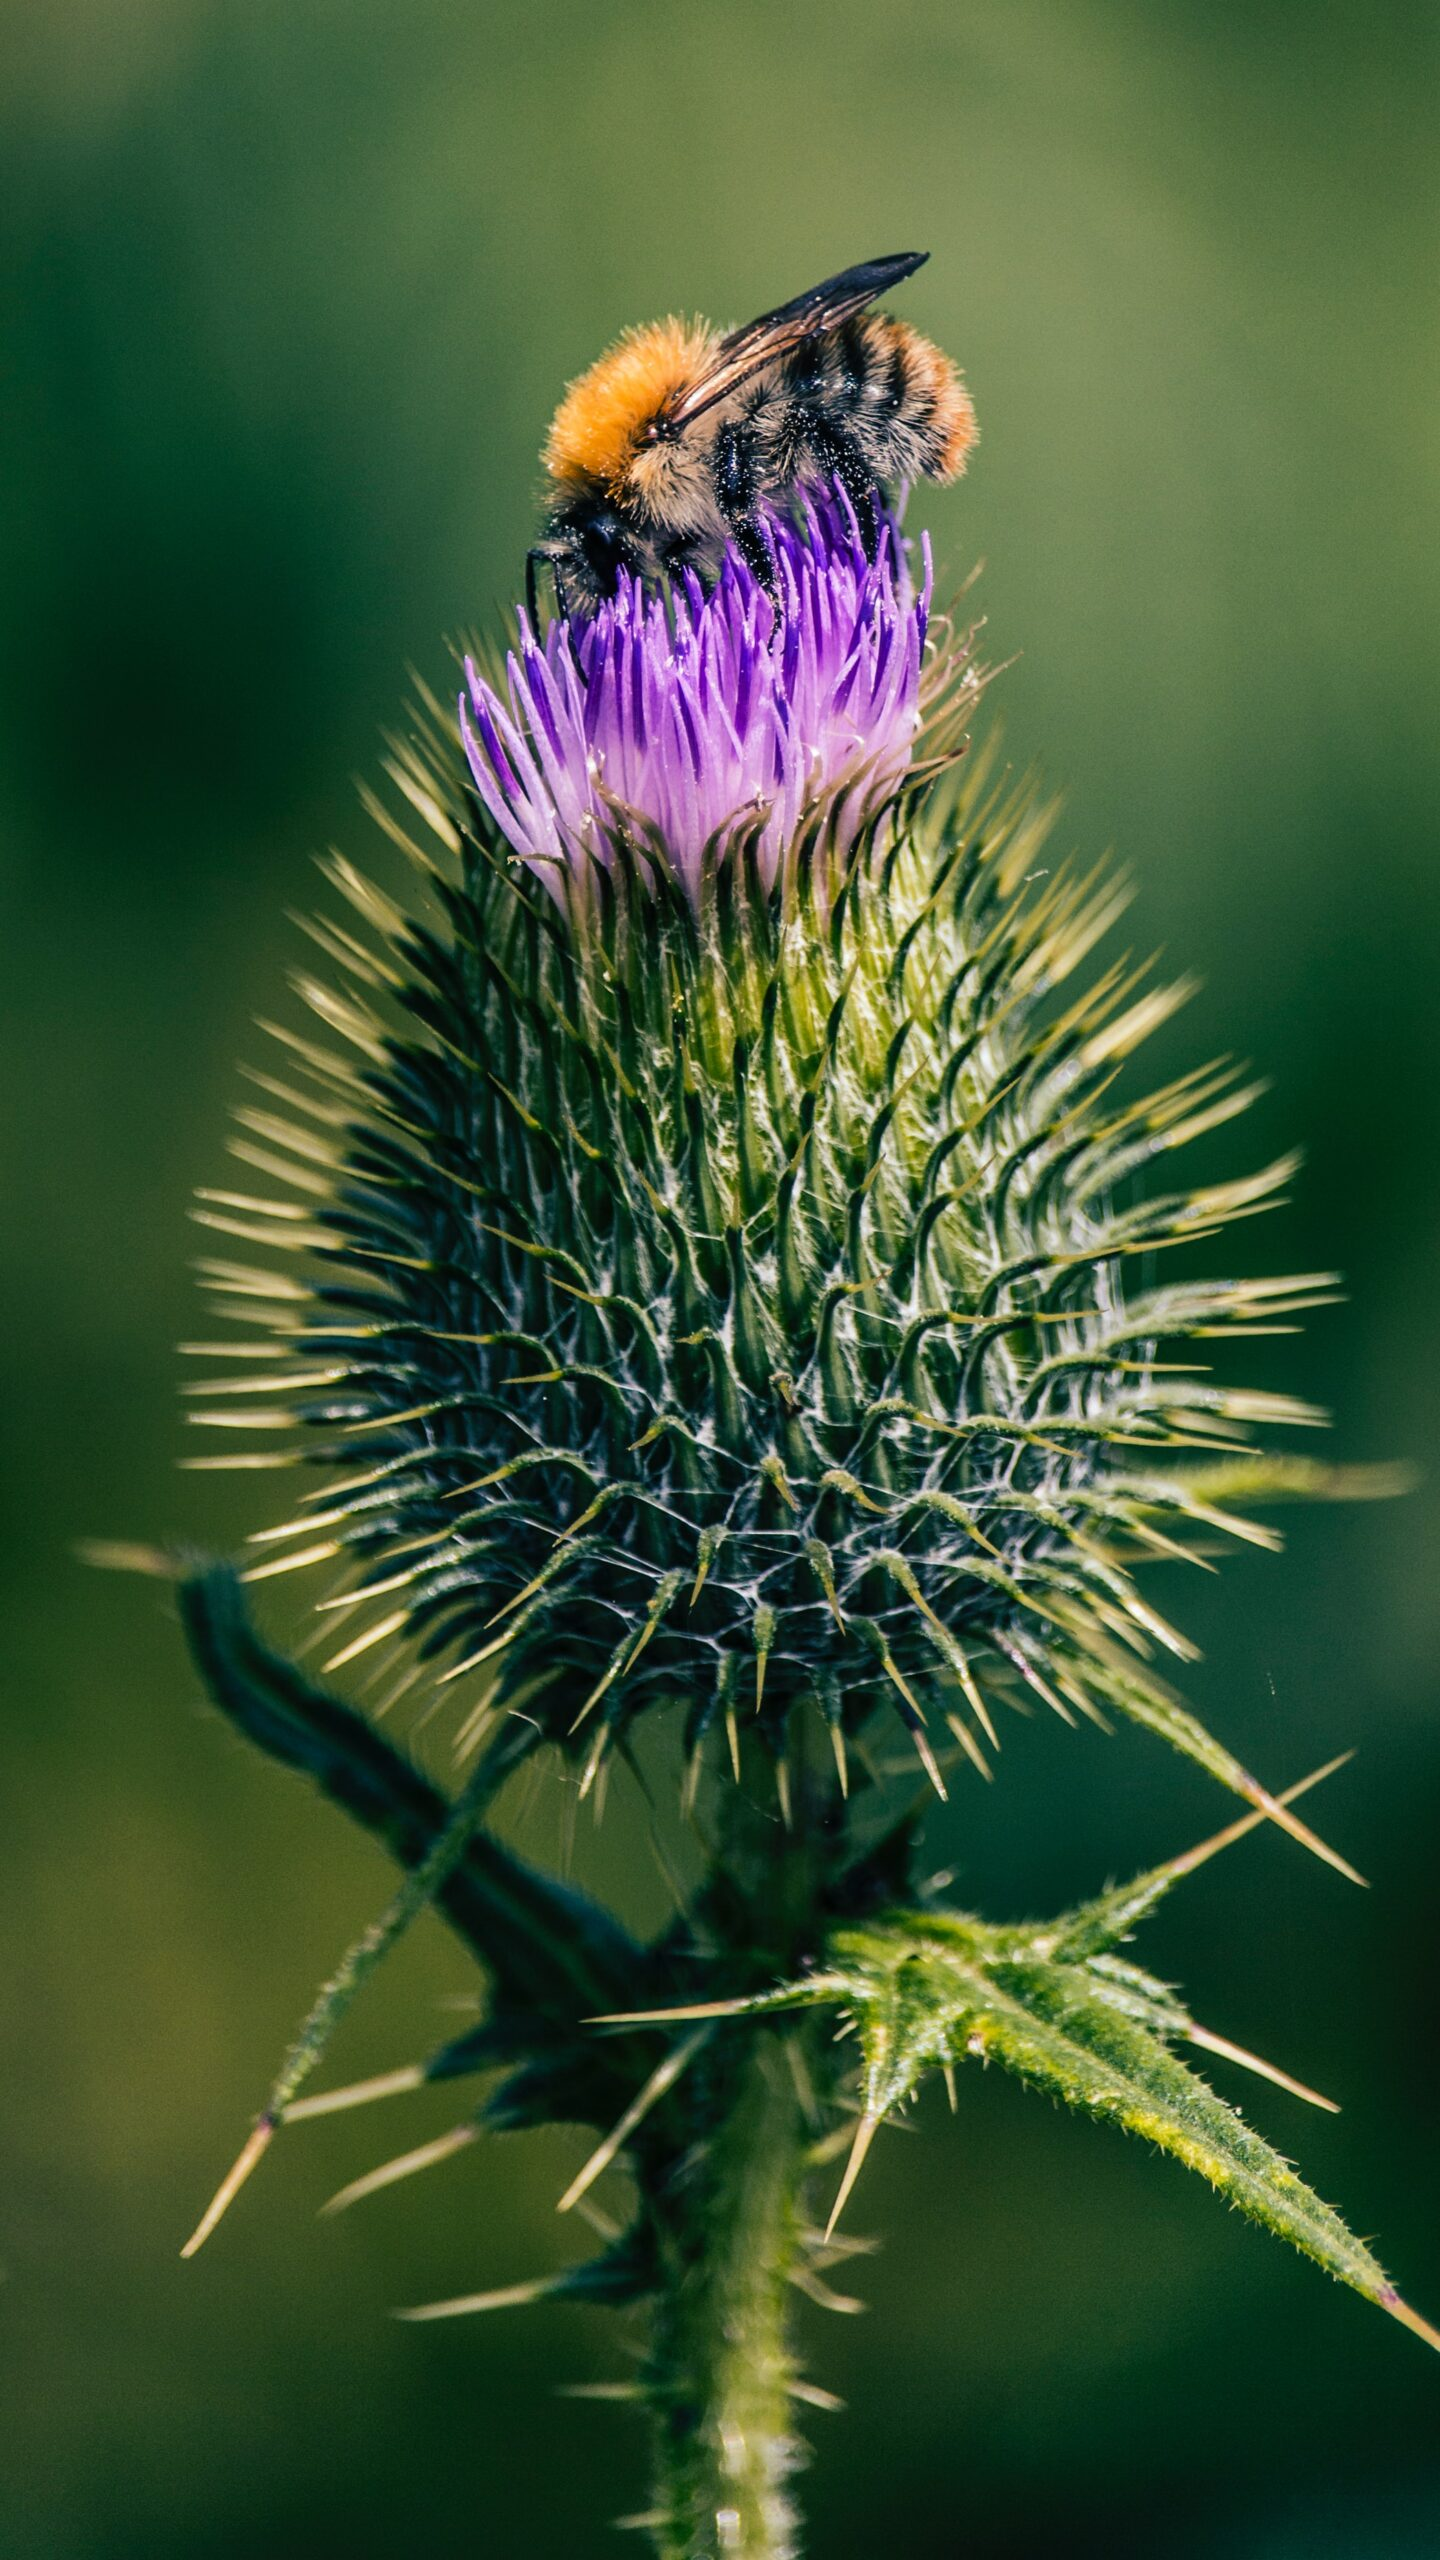 Milk Thistle Single Flower About To Bloom With Bee By Hoch3media Qlv 65cumqs Unsplash